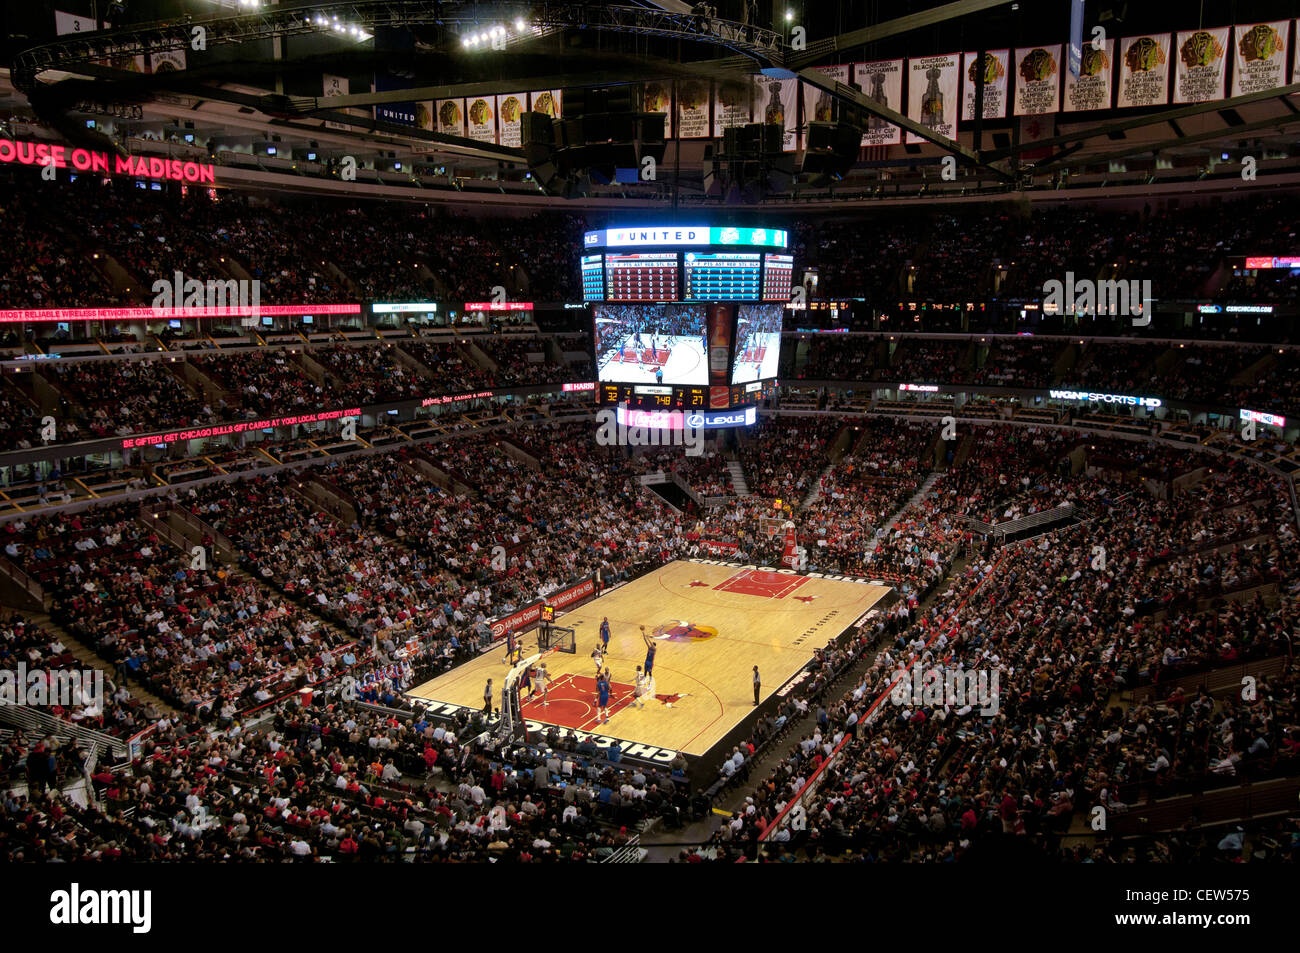 Chicago Bulls Basketball Game At The United Center Stock Photo